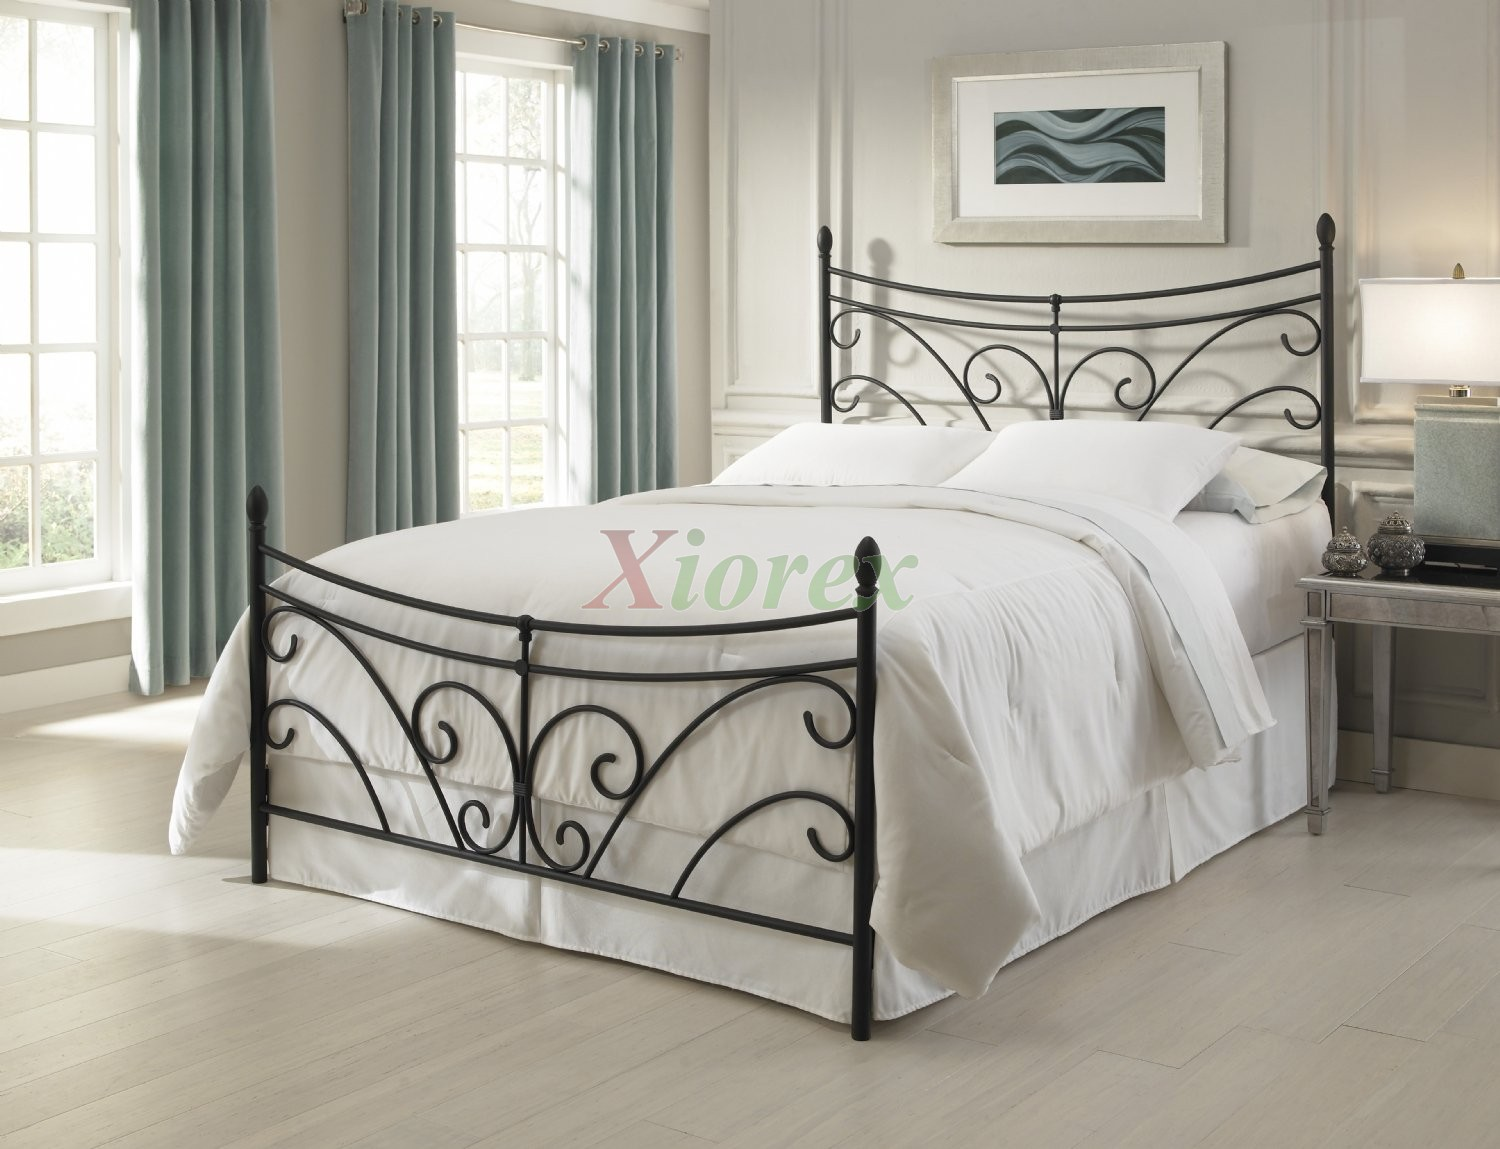 bergen bed metal bed in matte black by fashion bed group xiorex - Fashion Bedroom Furniture